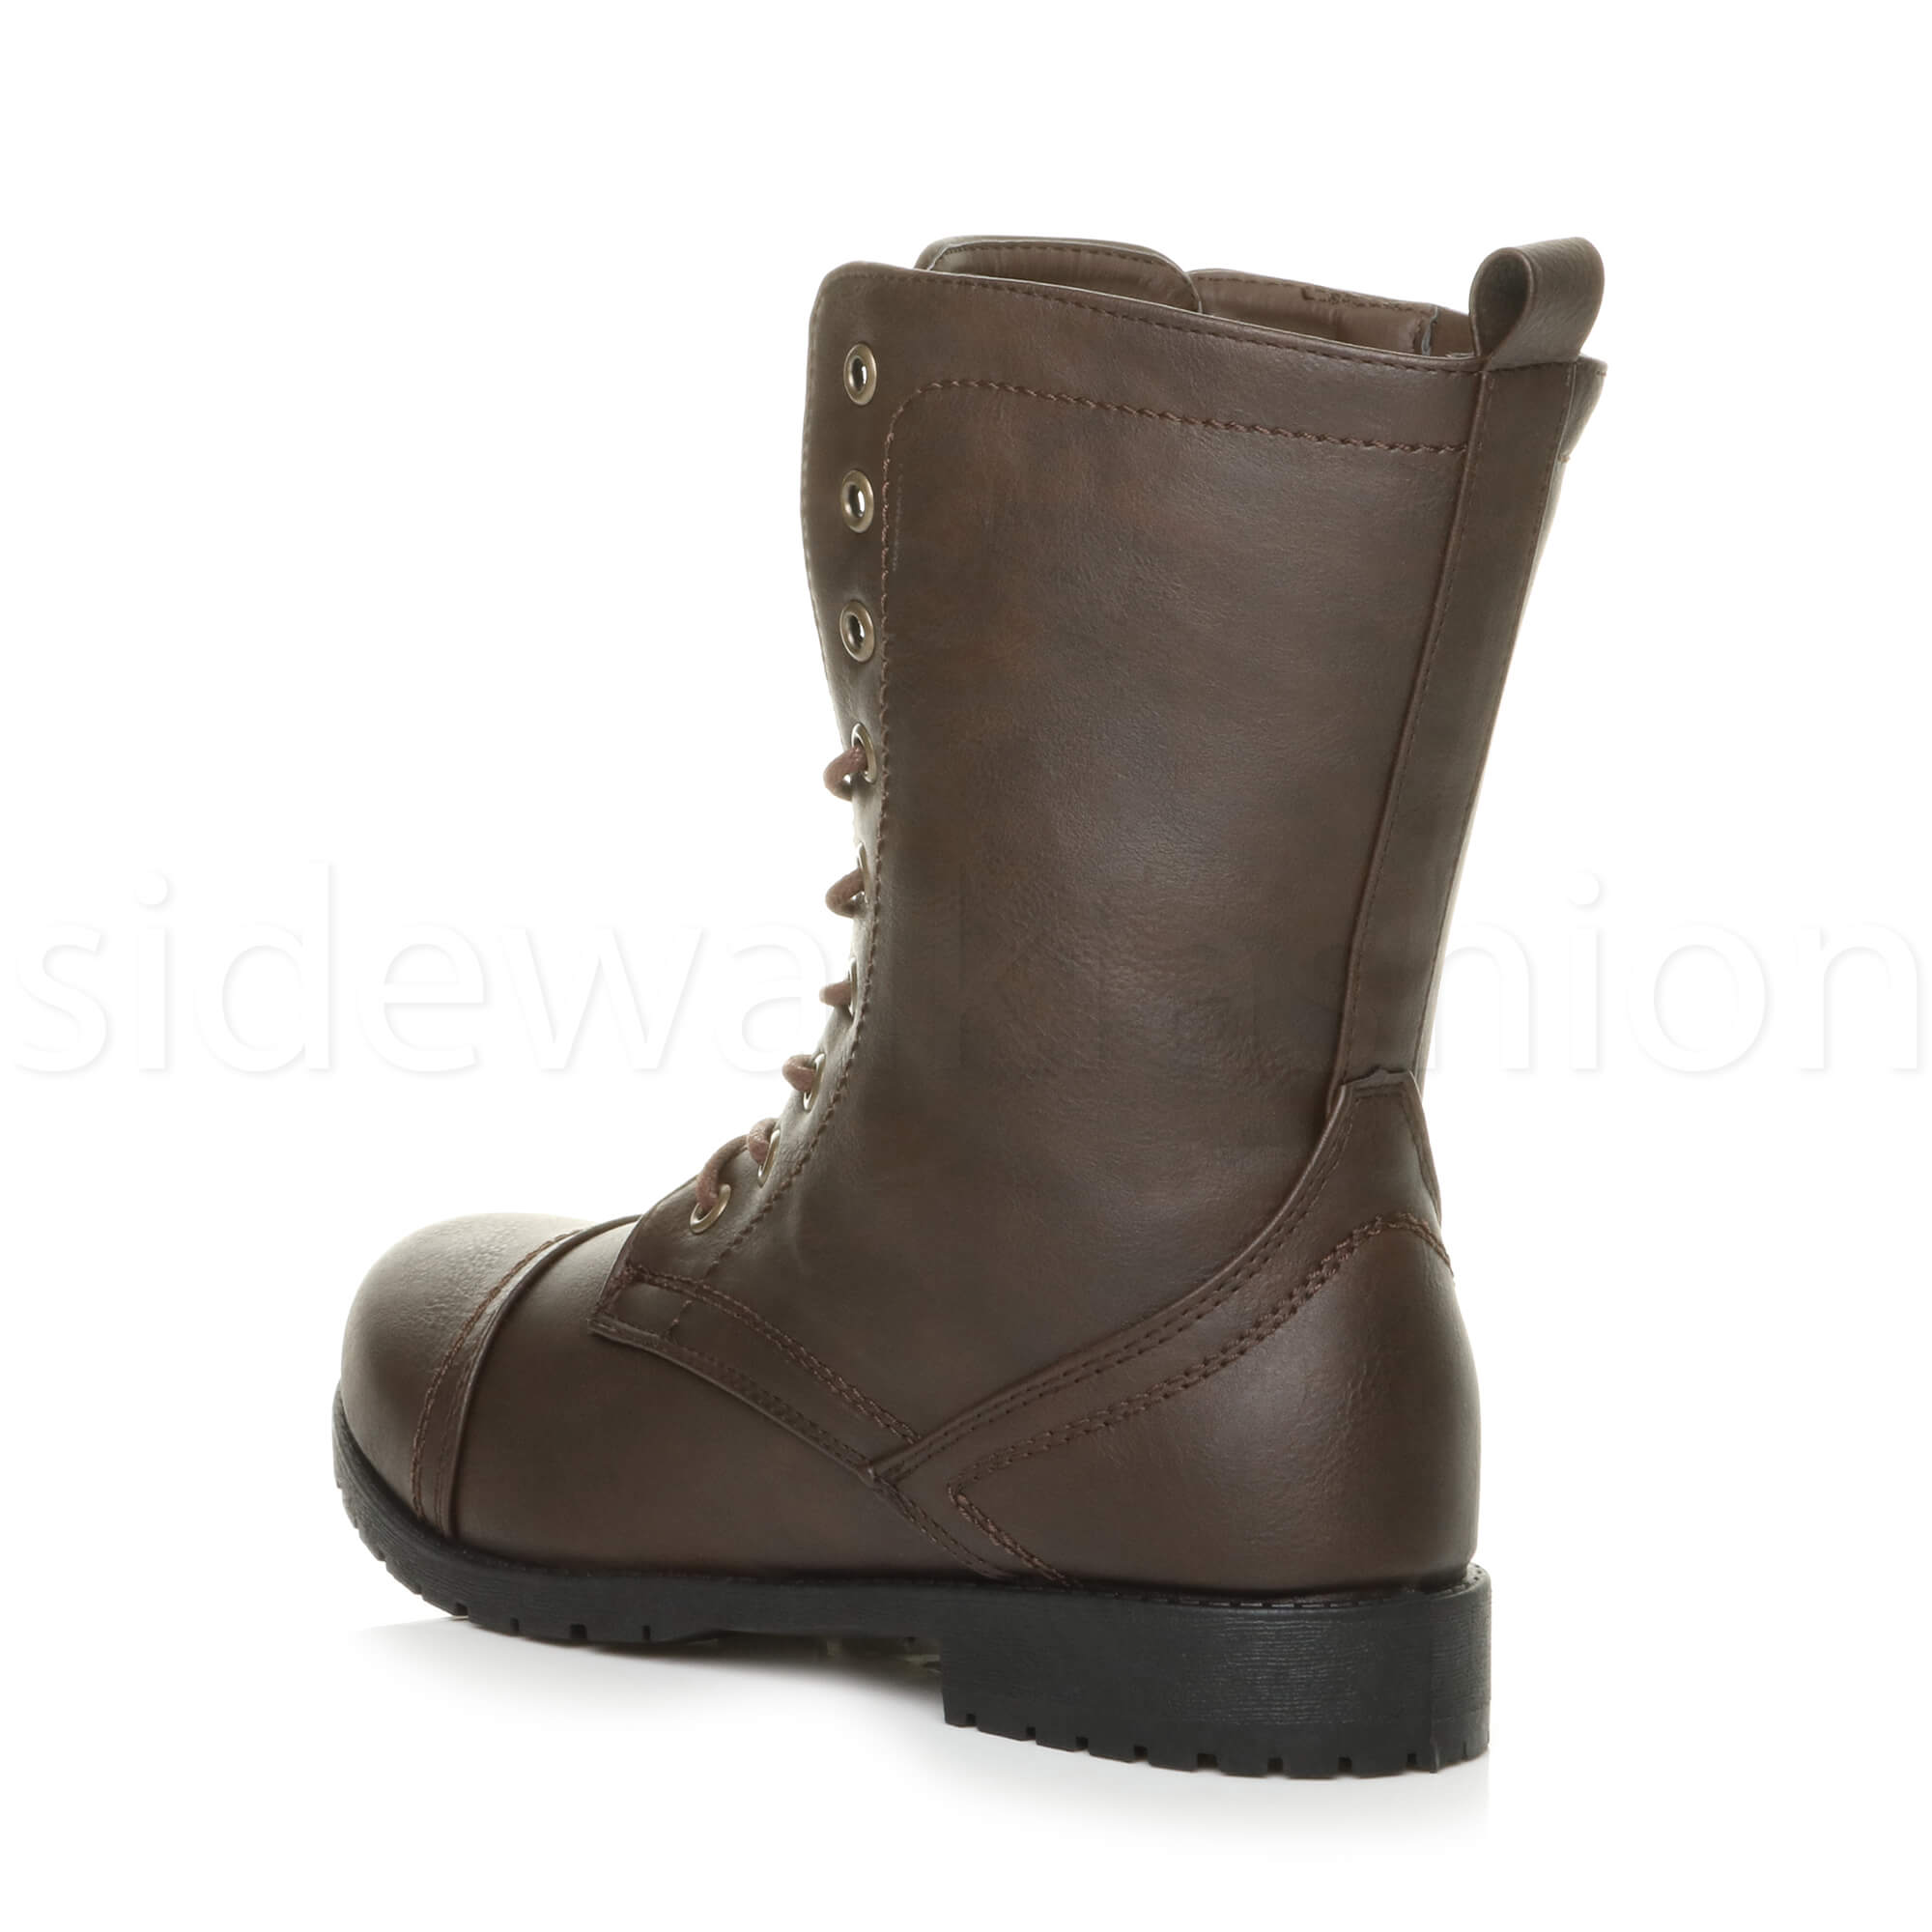 Womens-ladies-low-heel-flat-lace-up-zip-combat-biker-military-ankle-boots-size thumbnail 77